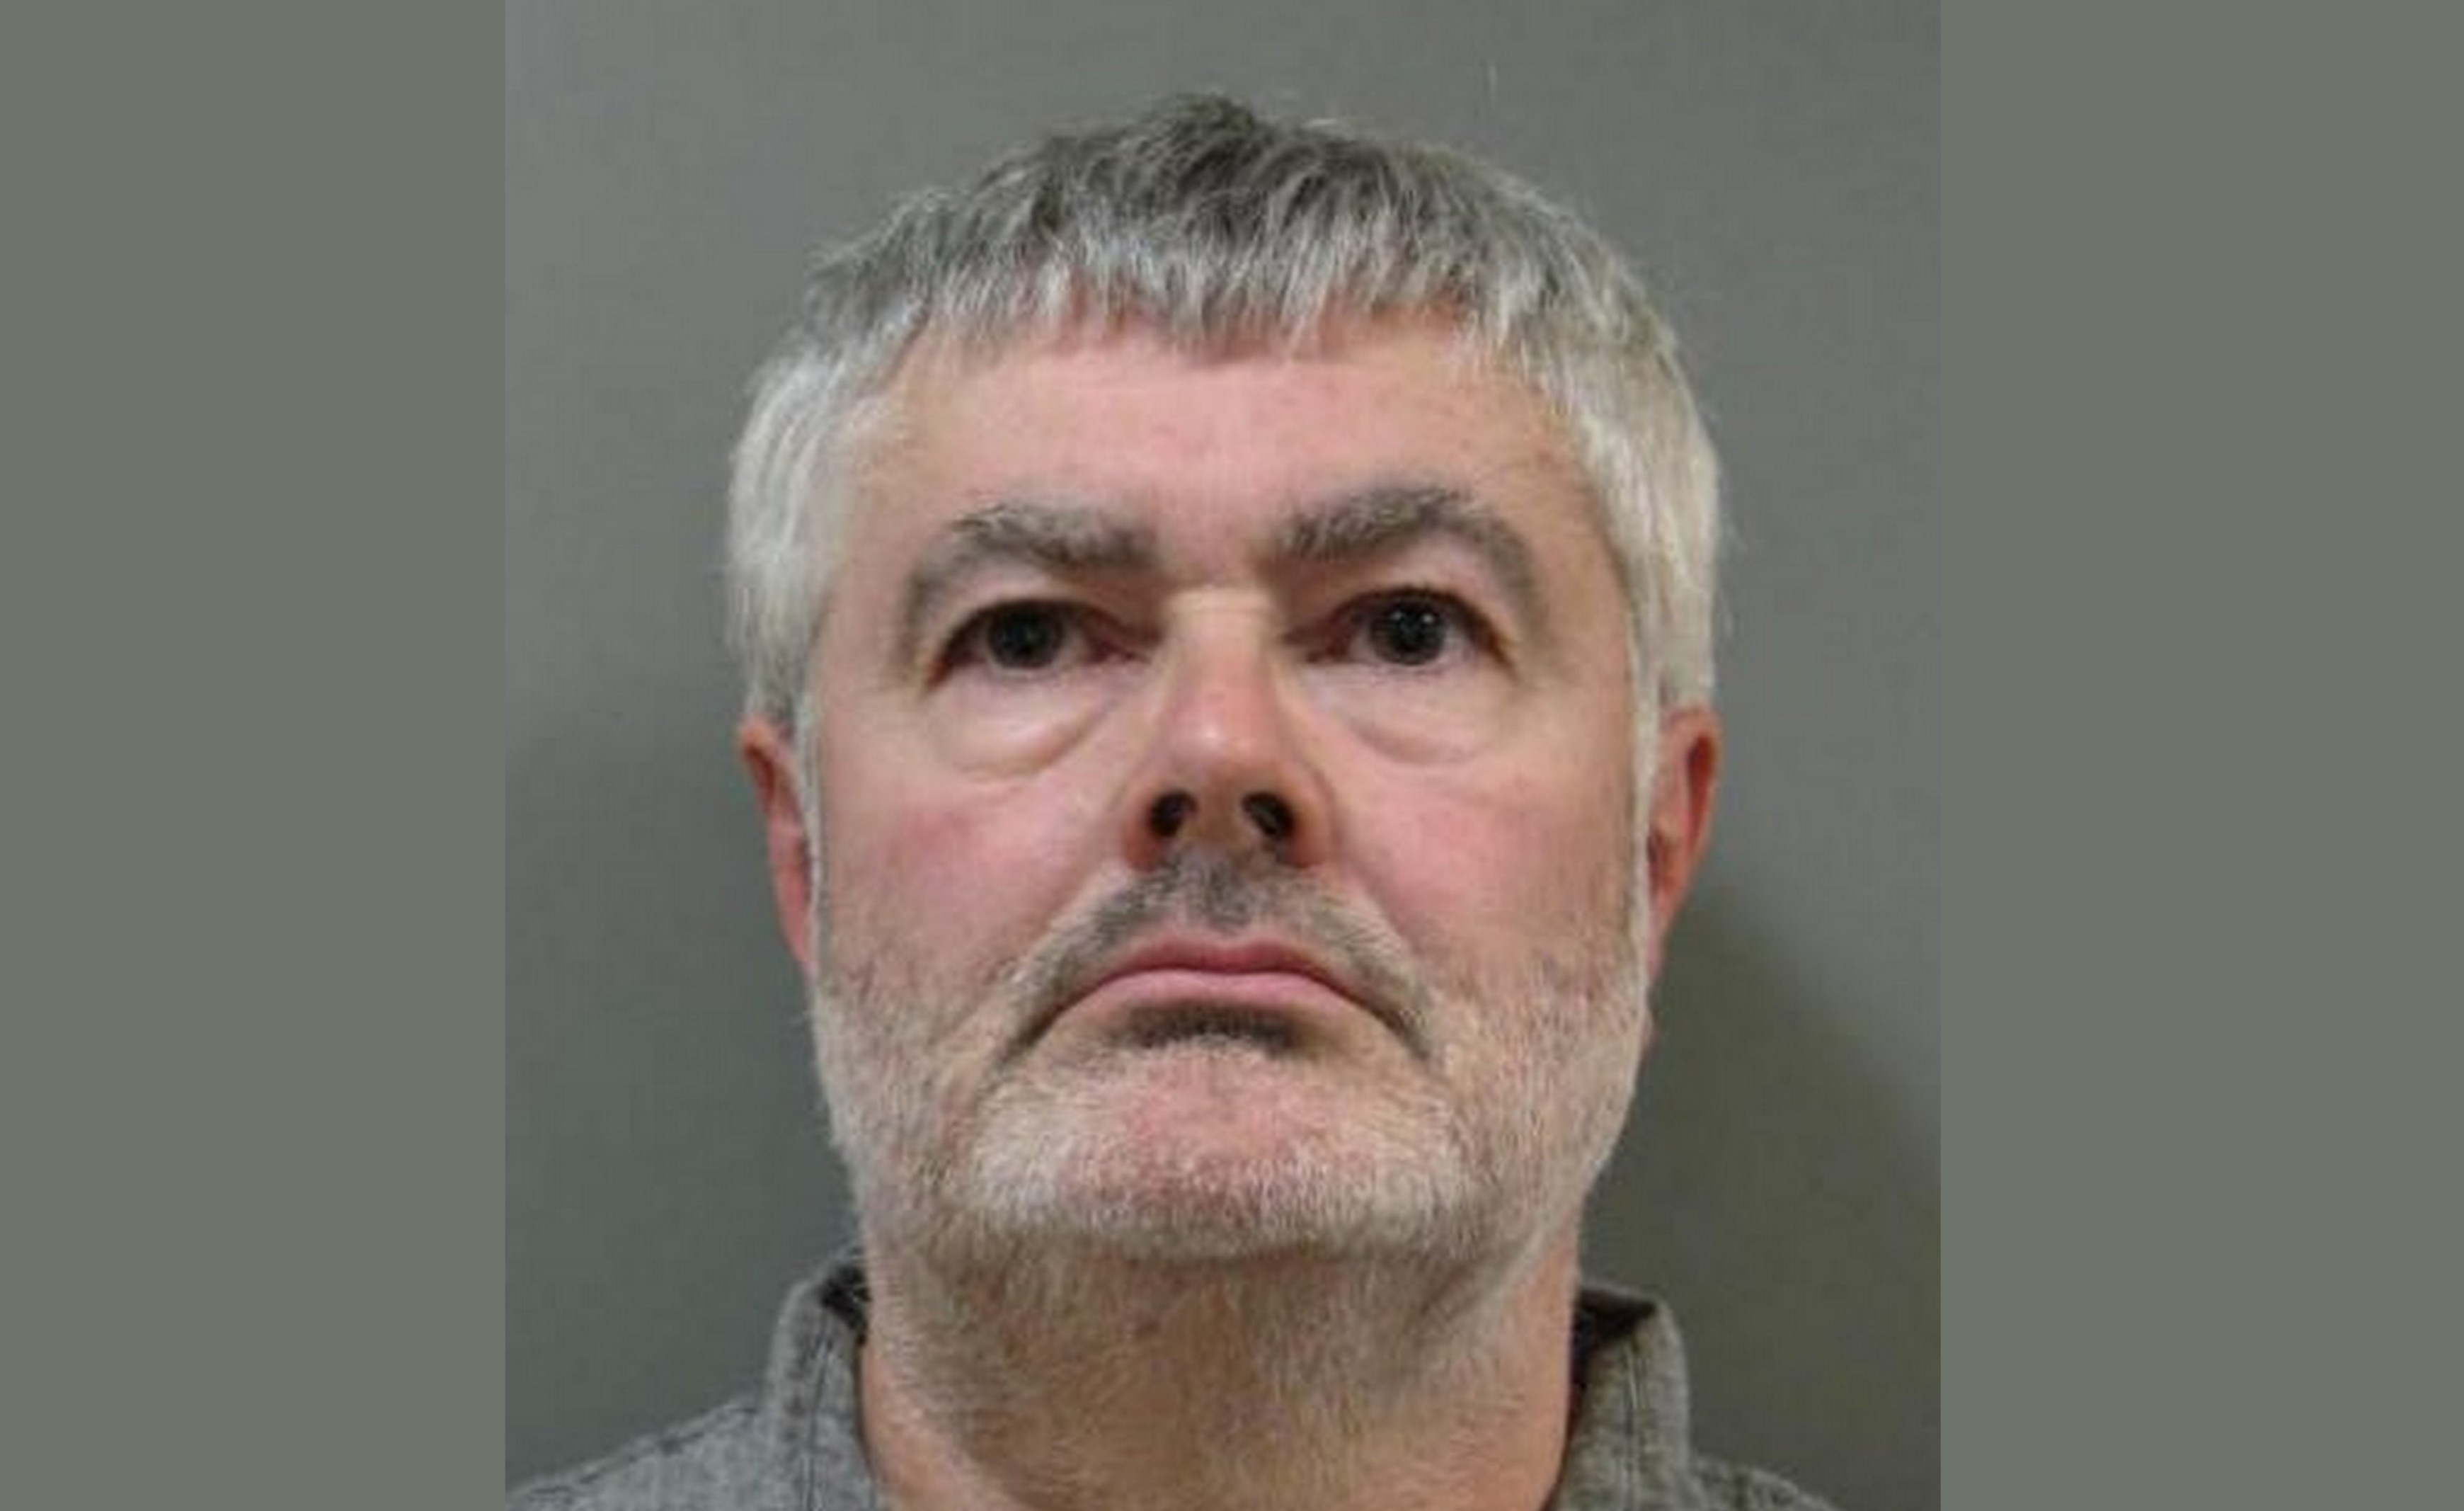 Man Hid Tiny Cameras In His Bathrooms Recorded 60 Nude Children